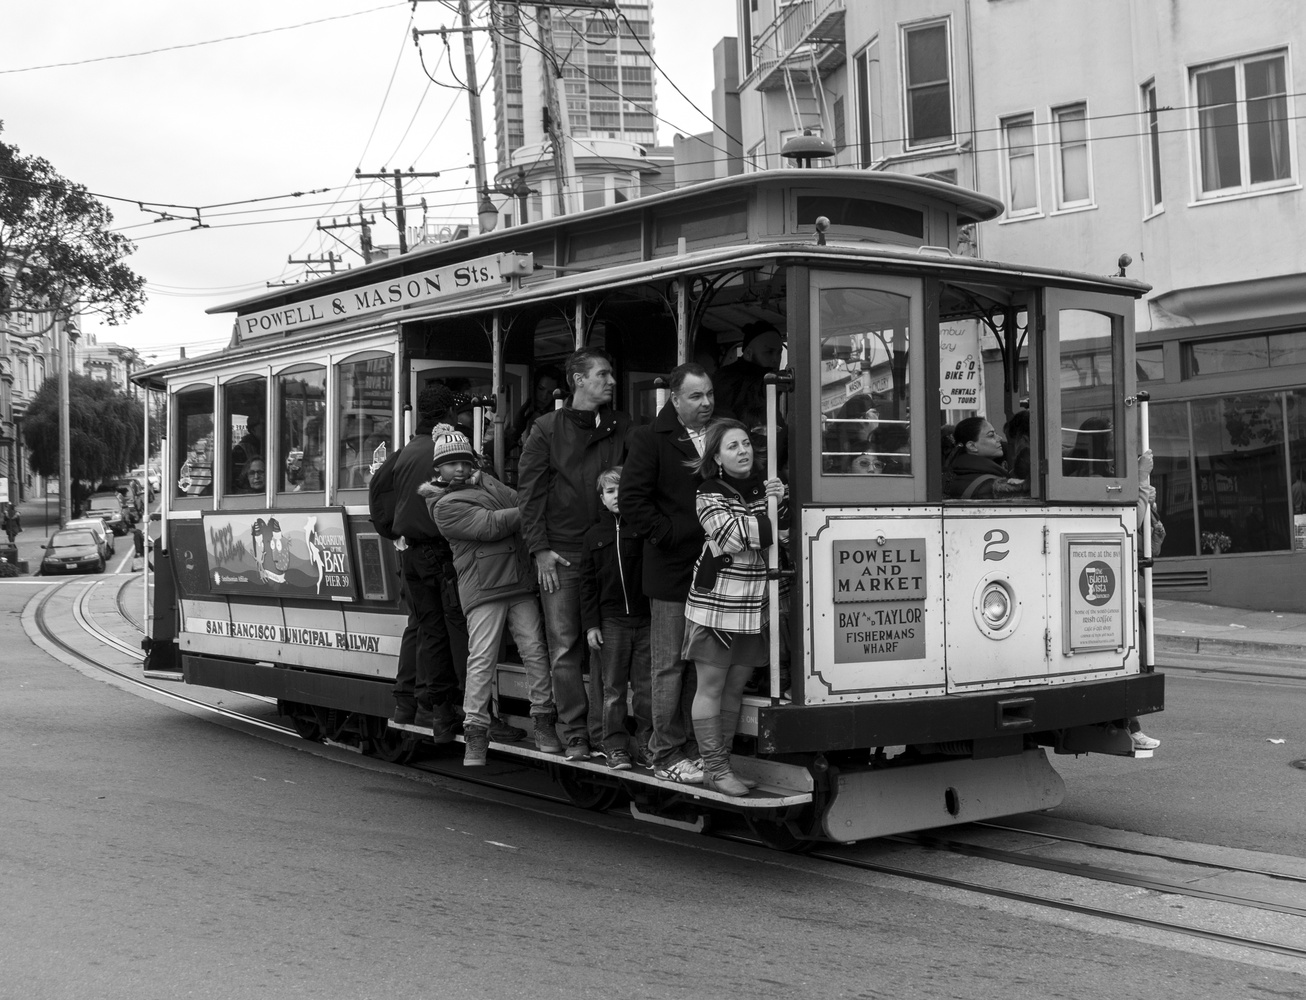 Trolley on Columbus Ave San Francisco by Avram Silberztein